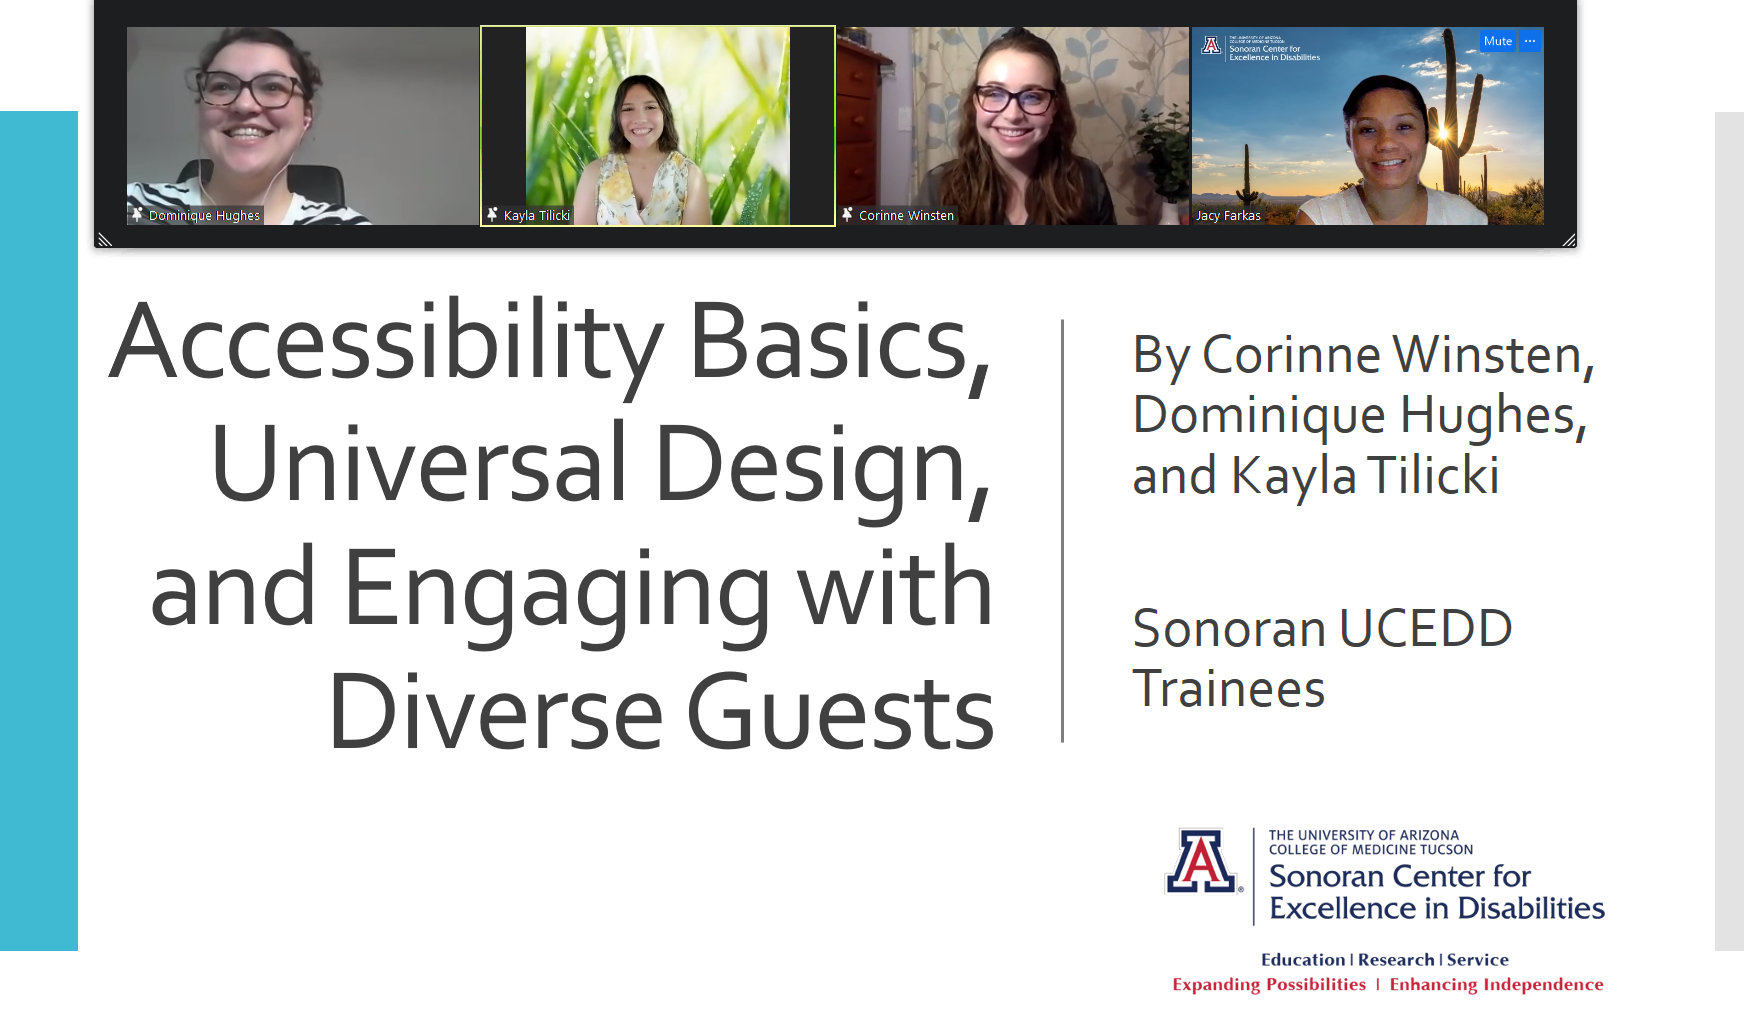 Screenshot of a Zoom shared screen presentation. Across the top from left to right: Dominique Hughes, Kayla Tilicki, Corrine Winsten and Jacy Farkas have their cameras on to give a presentation called: Accessibility Basics, Universal Design and Engaging with Divers Guests.